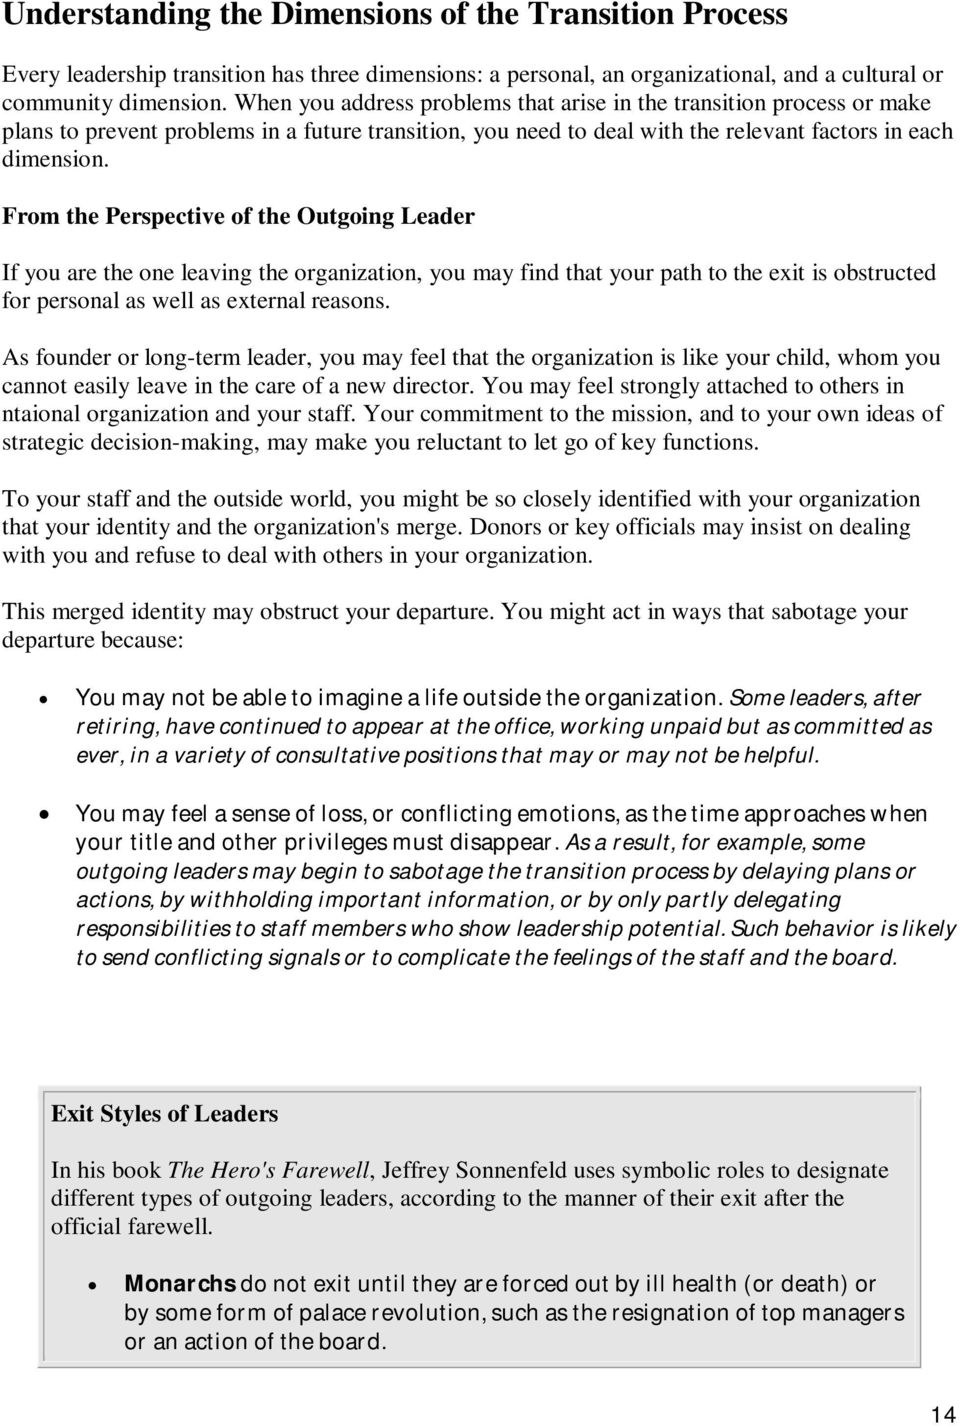 From the Perspective of the Outgoing Leader If you are the one leaving the organization, you may find that your path to the exit is obstructed for personal as well as external reasons.